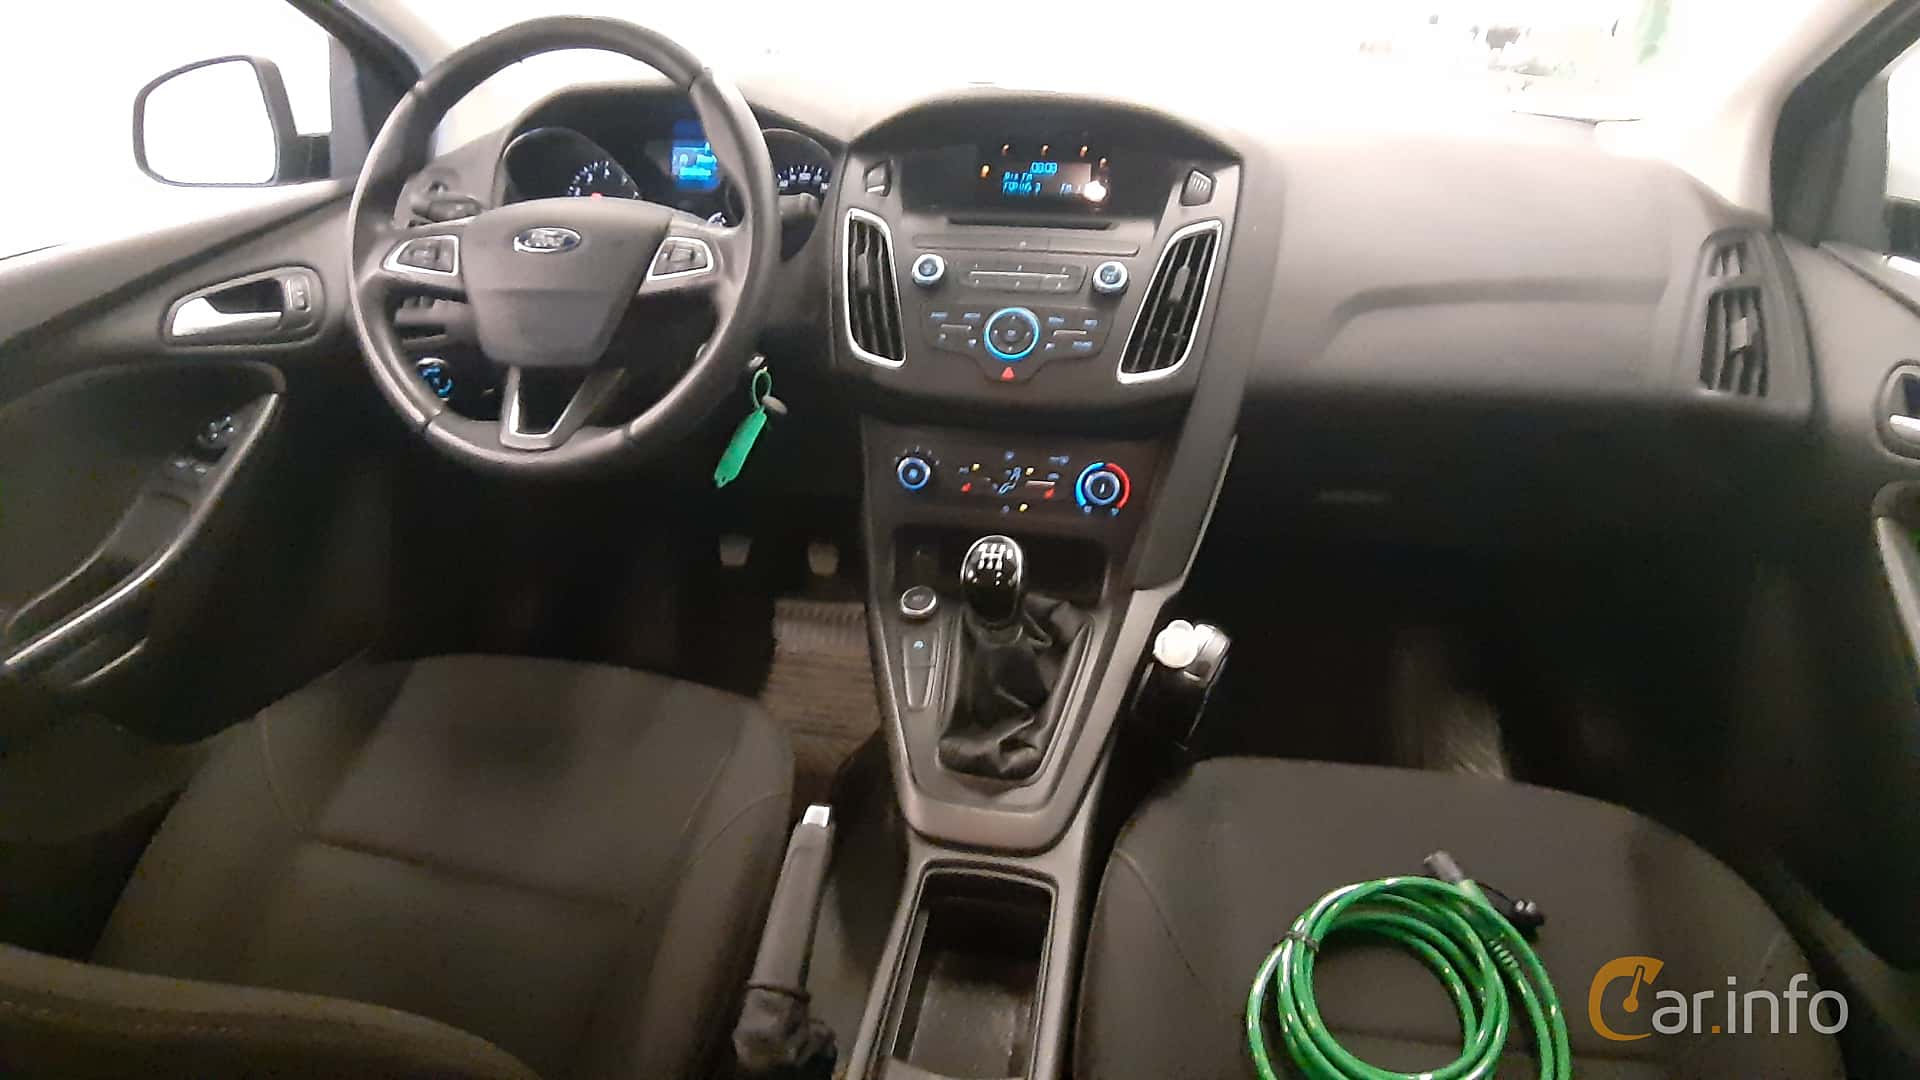 Ford Focus 1.0 EcoBoost Manual, 100hp, 2016